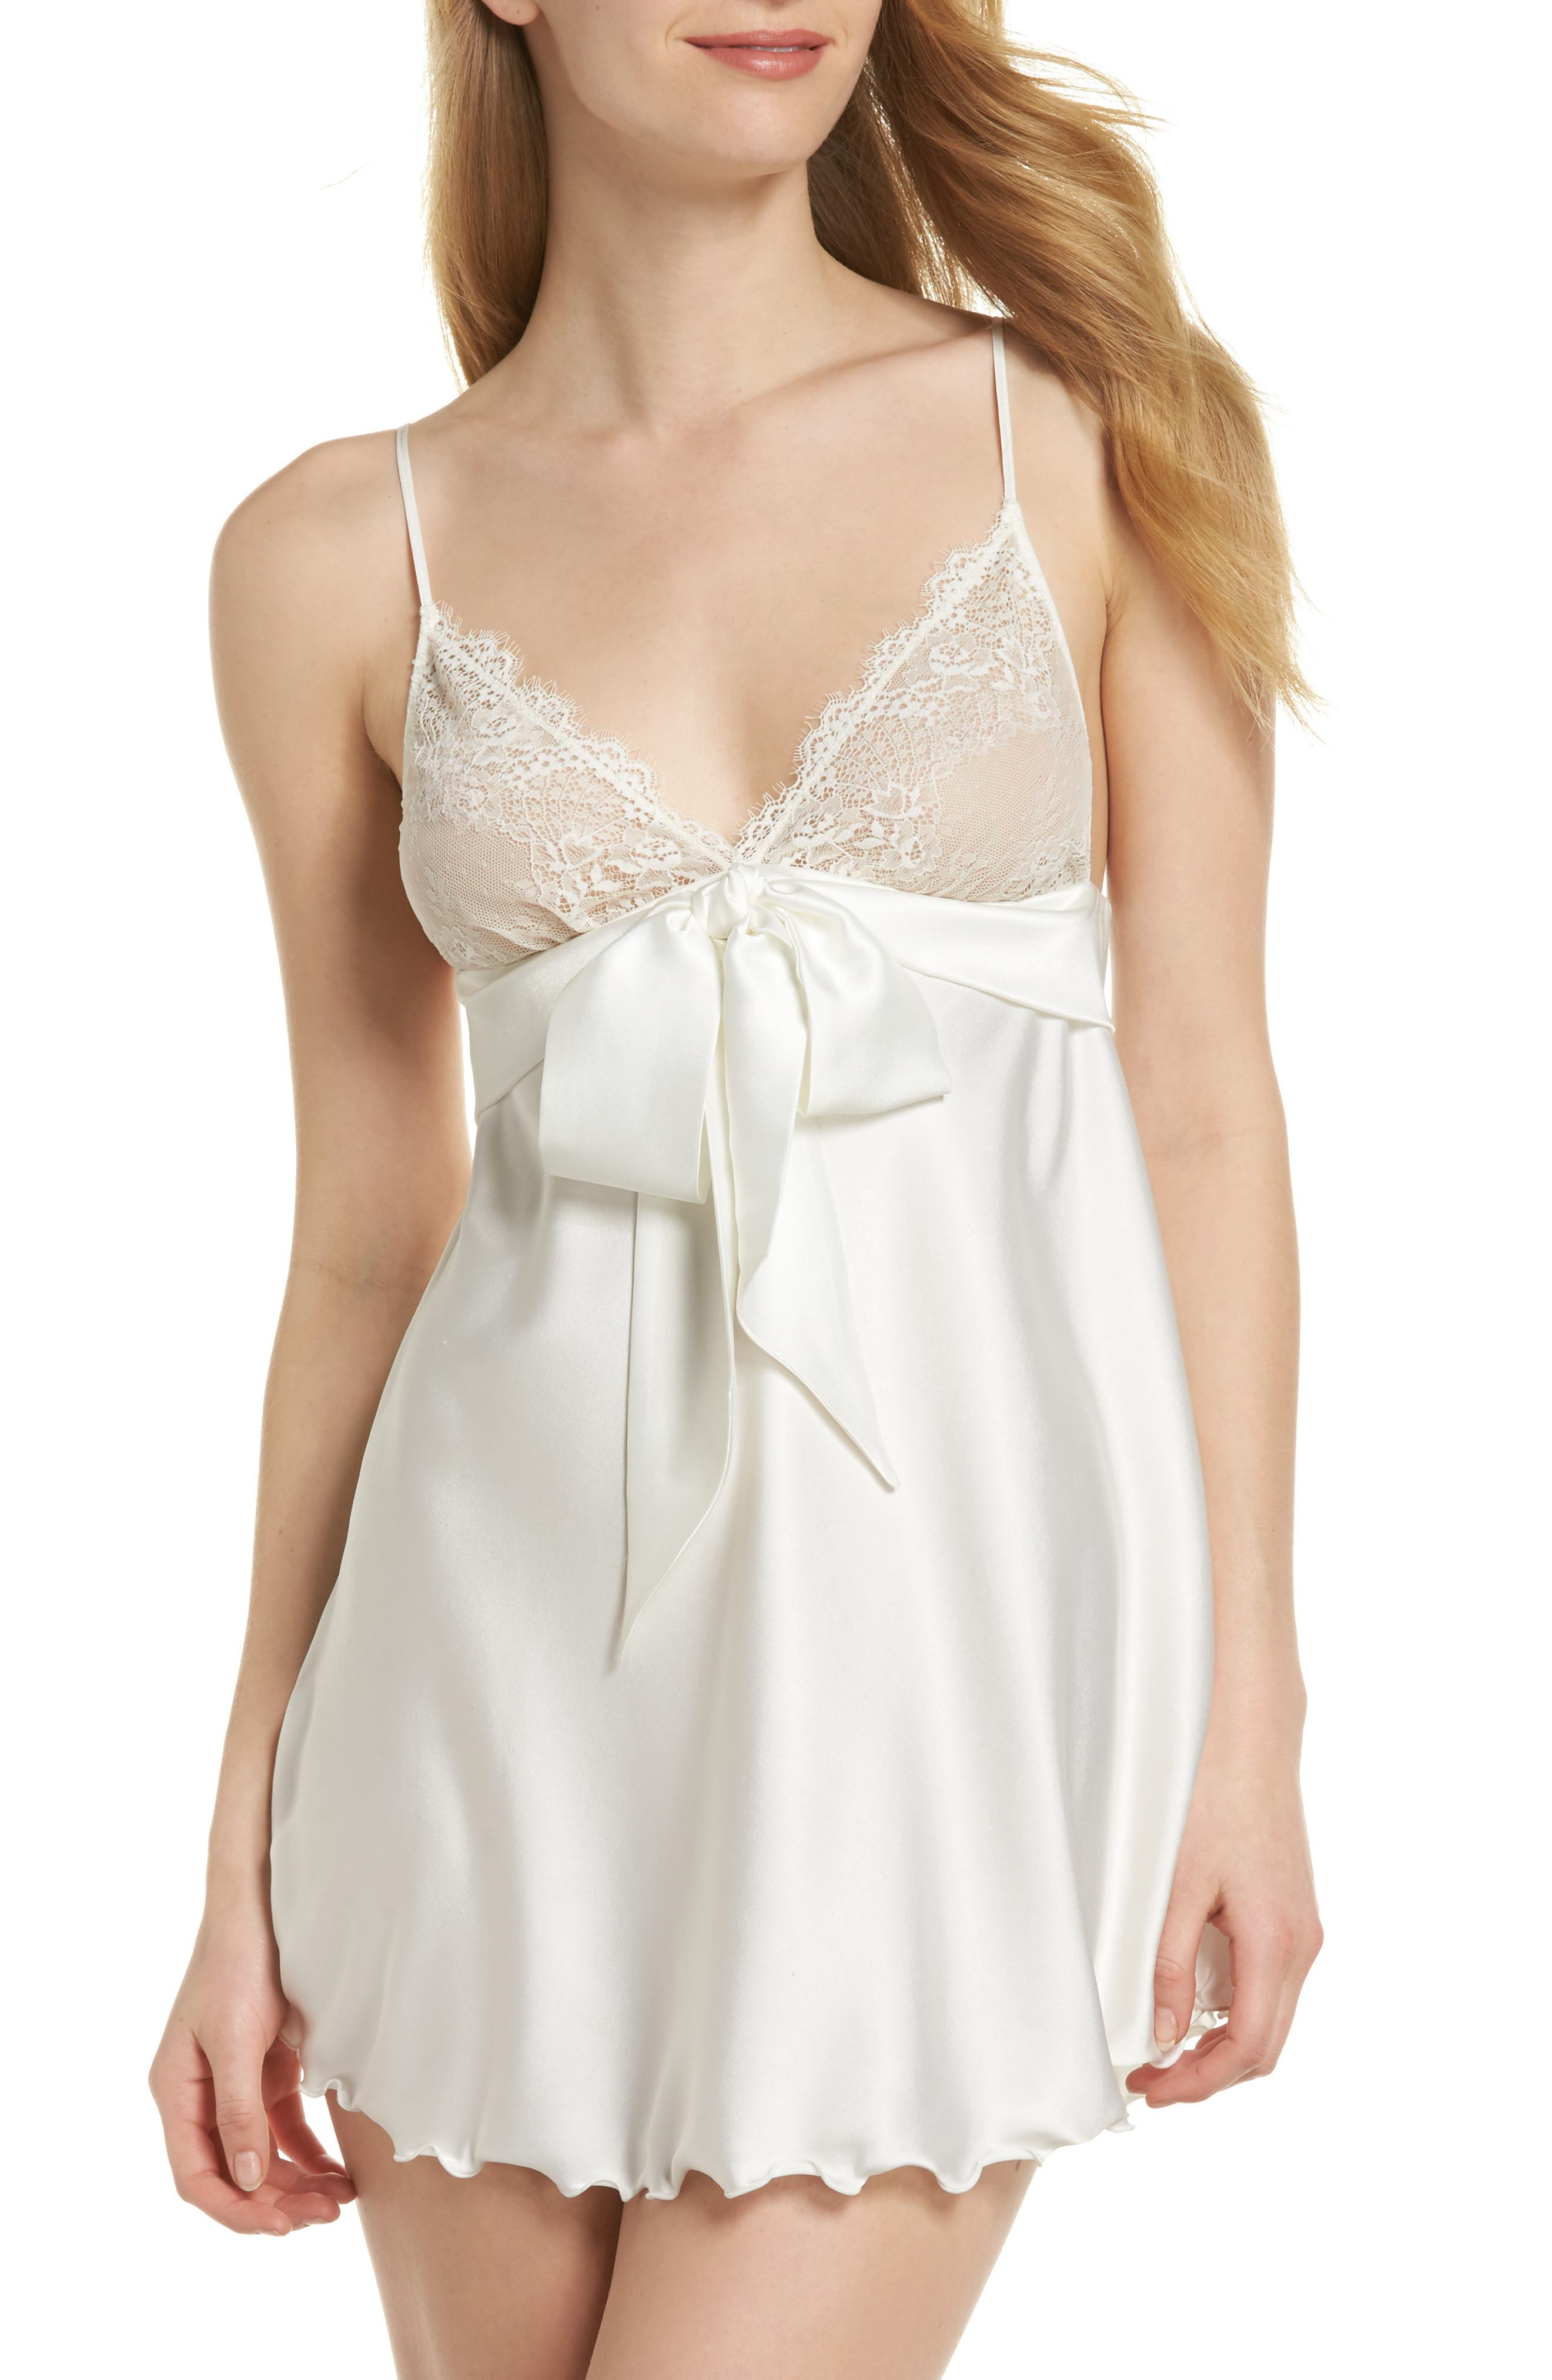 Samantha Chang Tie Front Babydoll Chemise